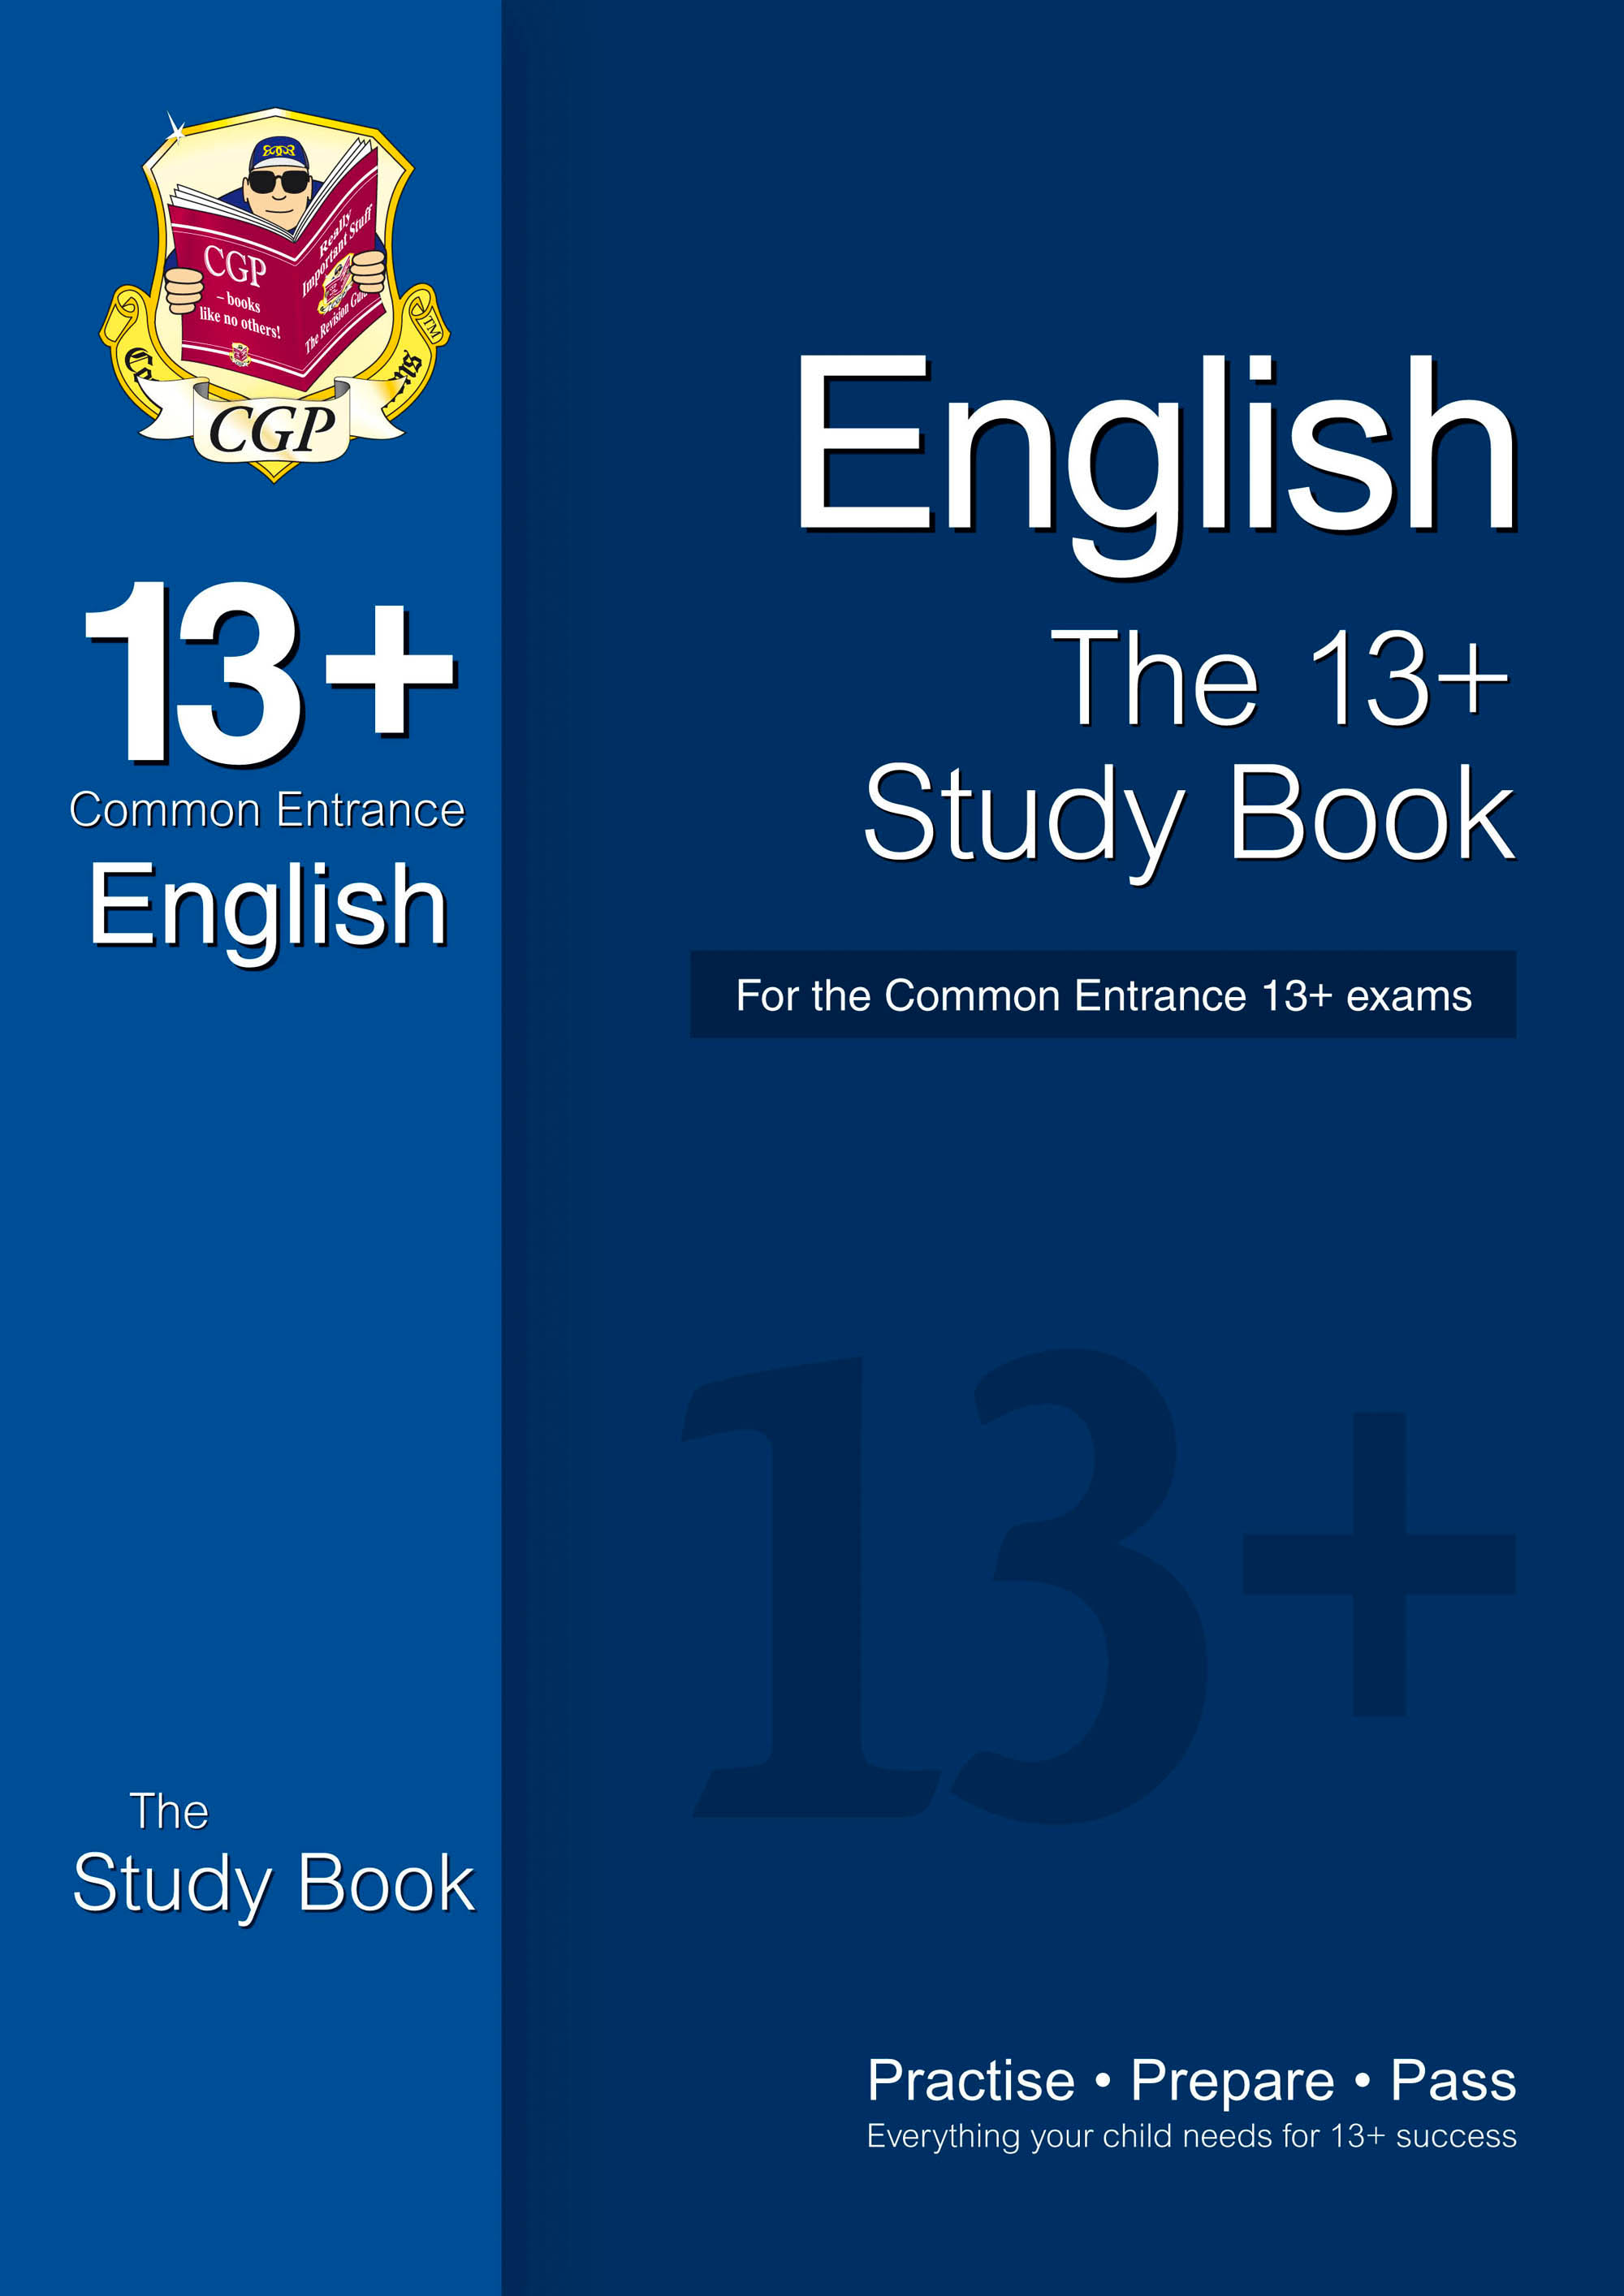 EIRT2DK - The 13+ English Study Book for the Common Entrance Exams (with online edition)